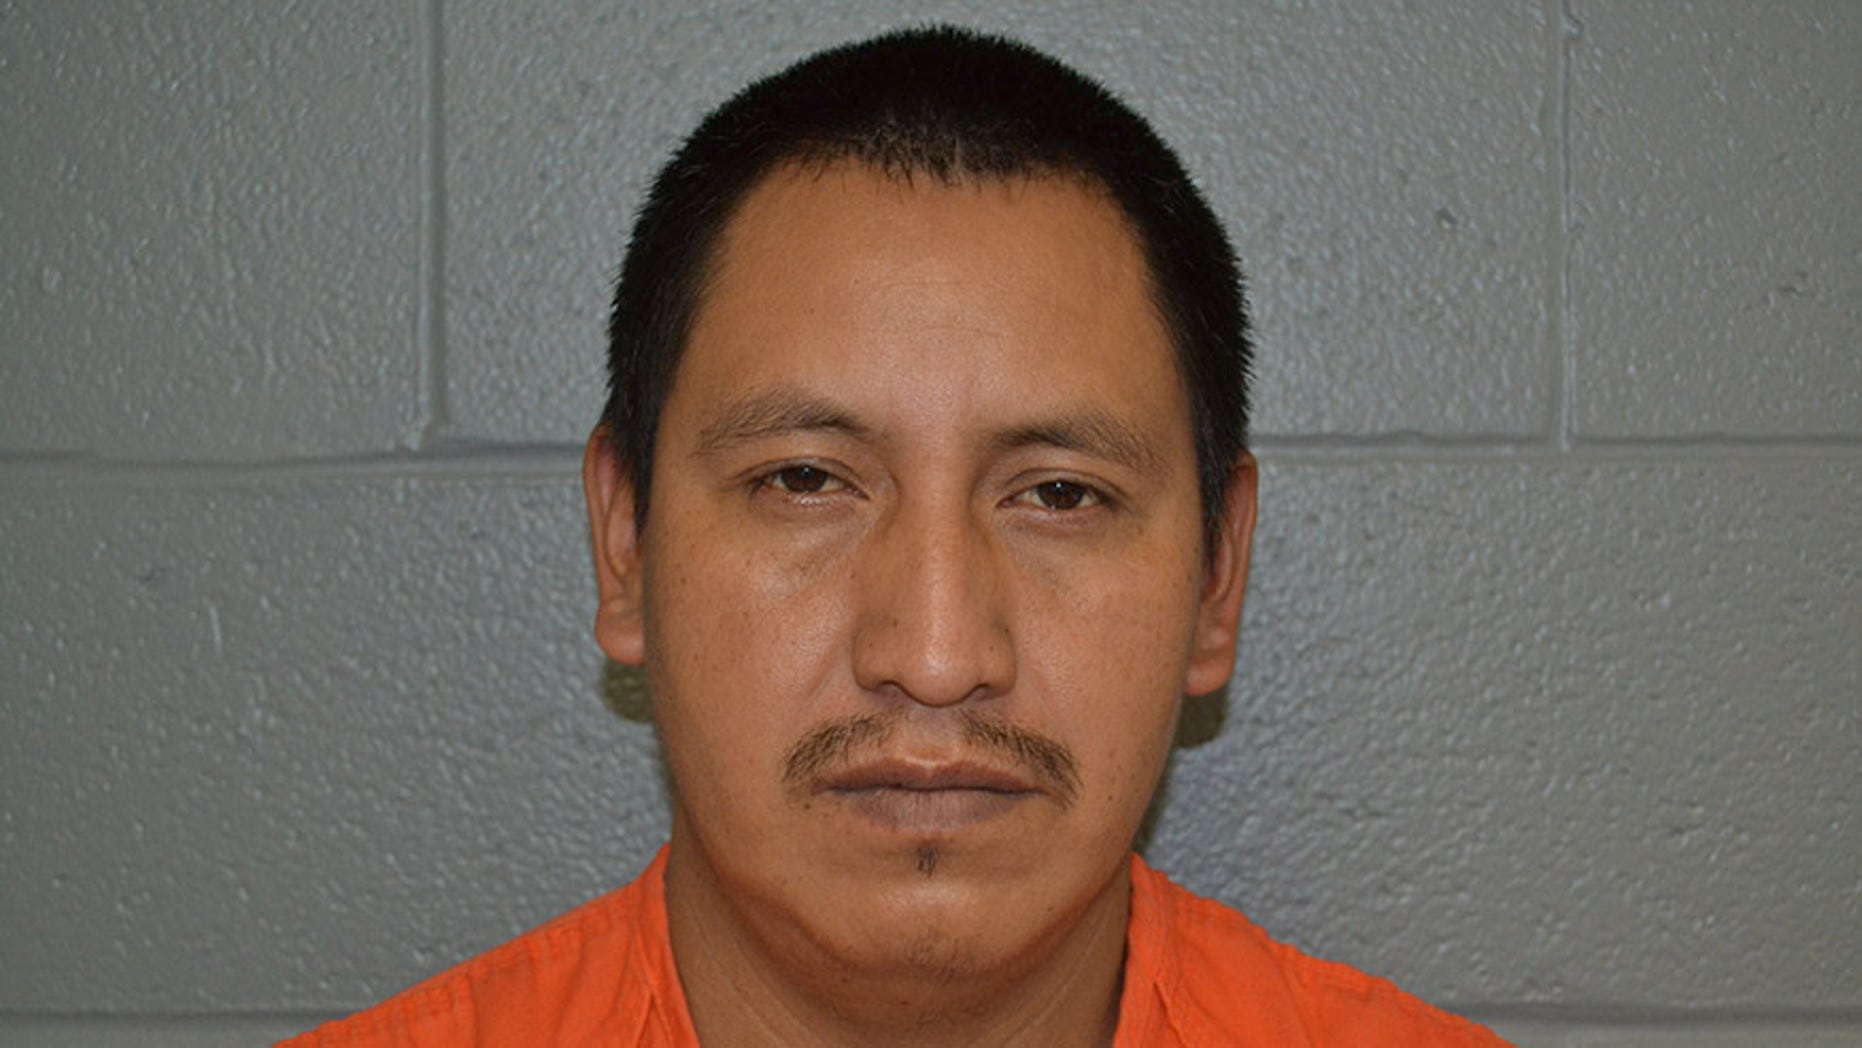 Esdras Marroquin Gomez pleaded not guilty to a murder charge Monday.